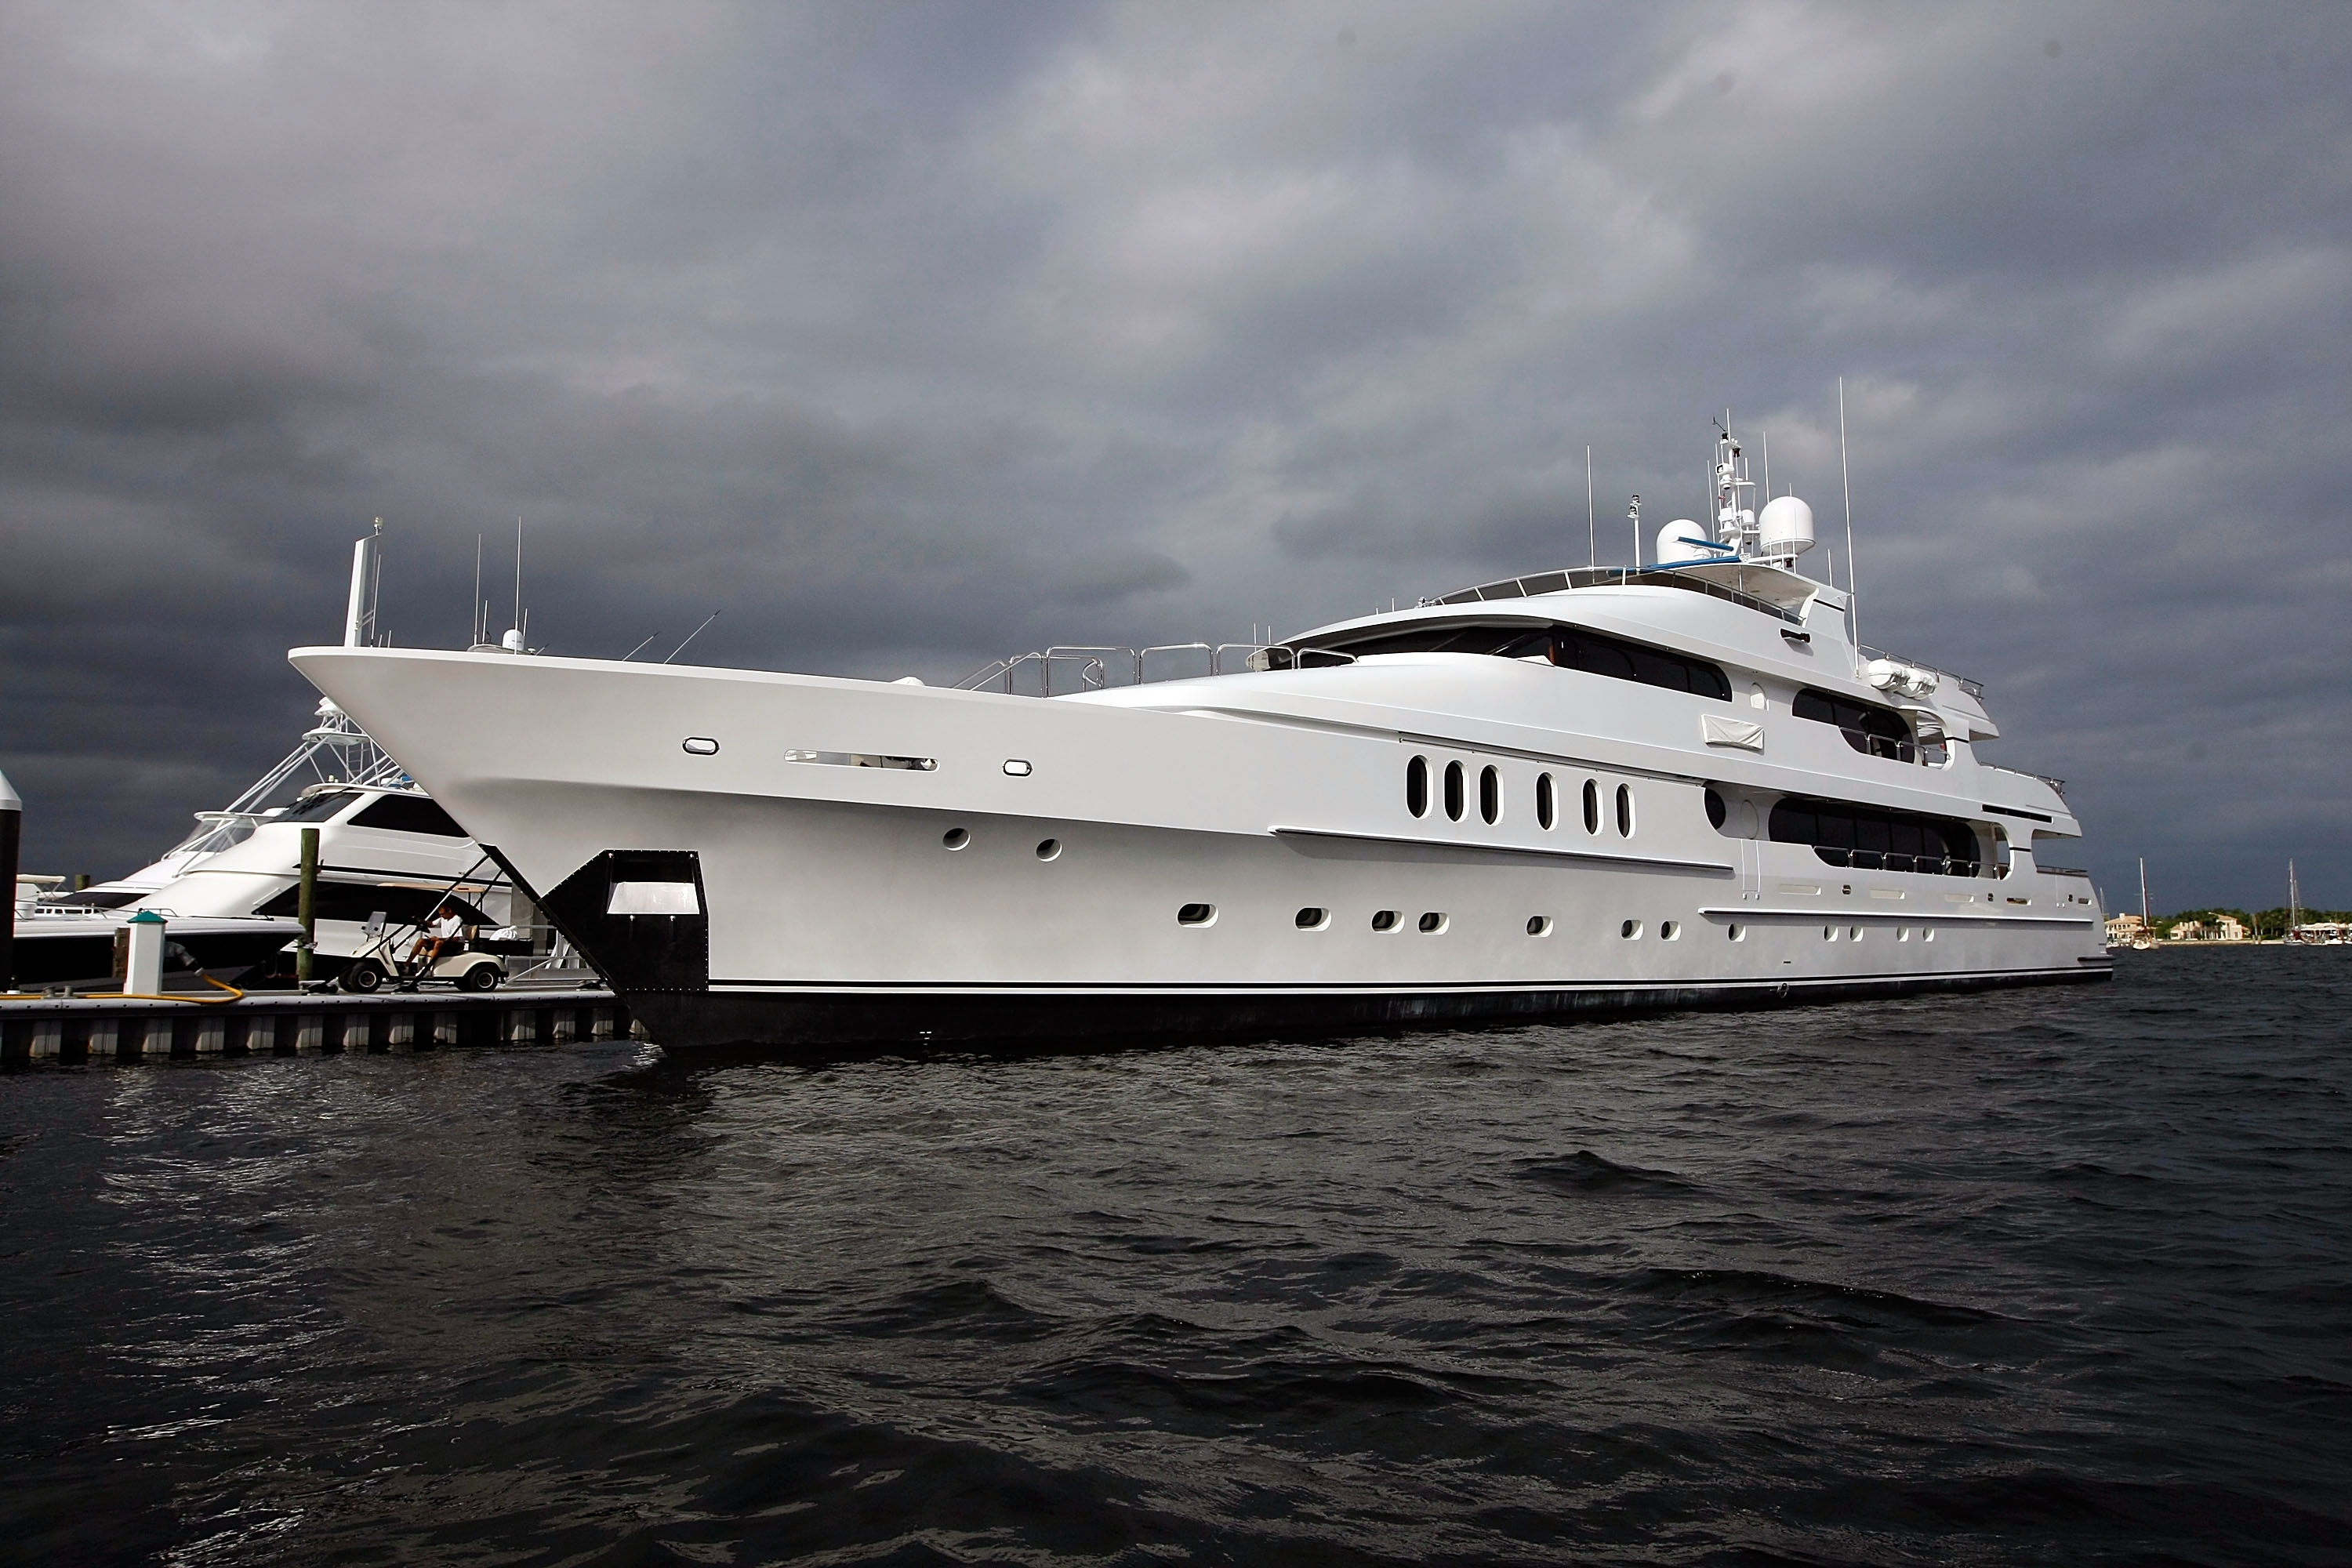 Tiger Woods yacht spotted in the Hamptons prior to US Open